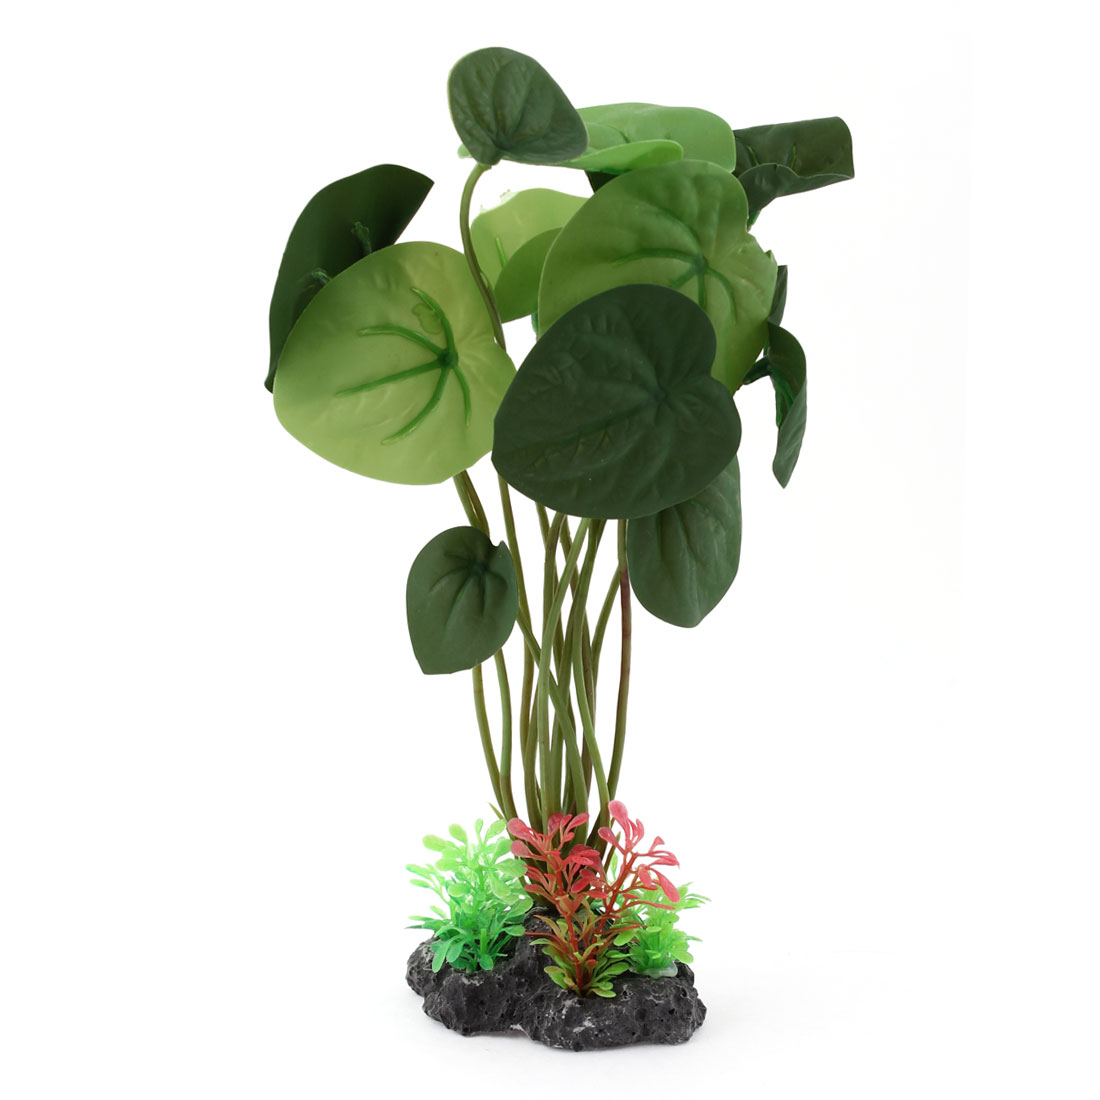 "8.3"" Height Green Plastic Grass Plants Decoration for Fish Tank"